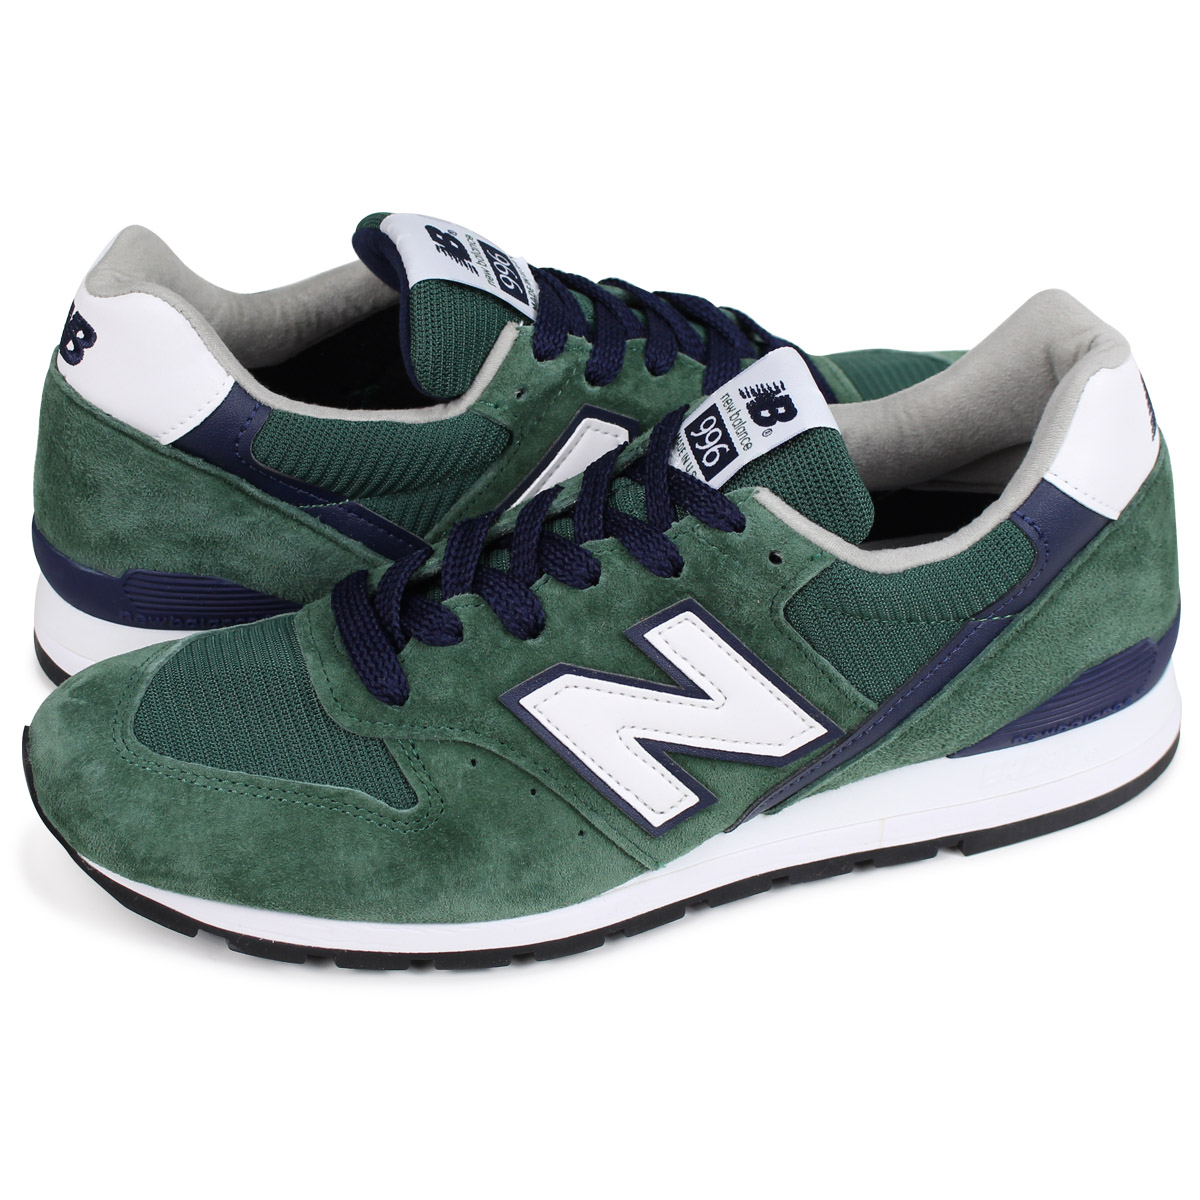 premium selection 4e2d3 71b41 New balance 996 mens new balance USA sneaker M996CSL D y shoes green  11 ...